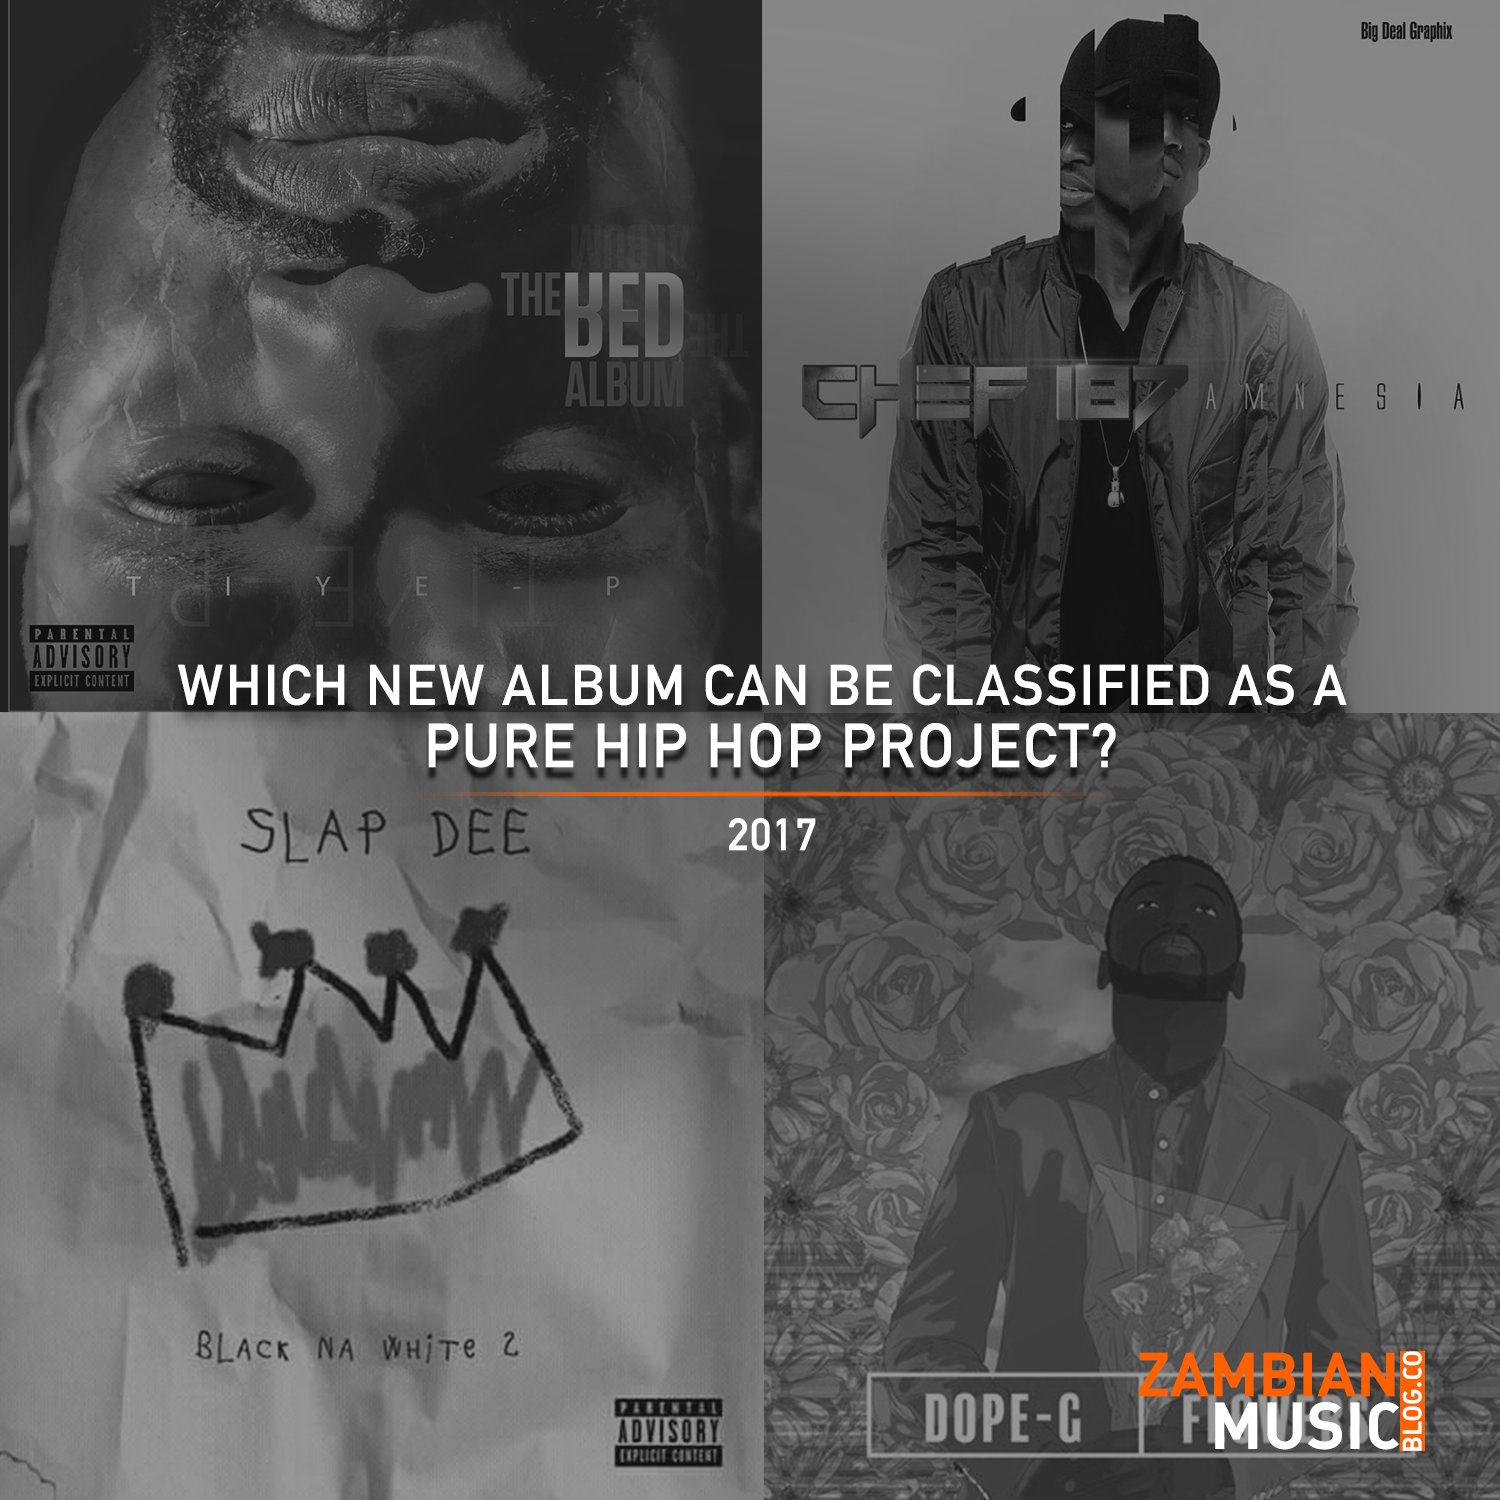 Which New Album can be Classified as a pure Hip Hop Project? | Vote